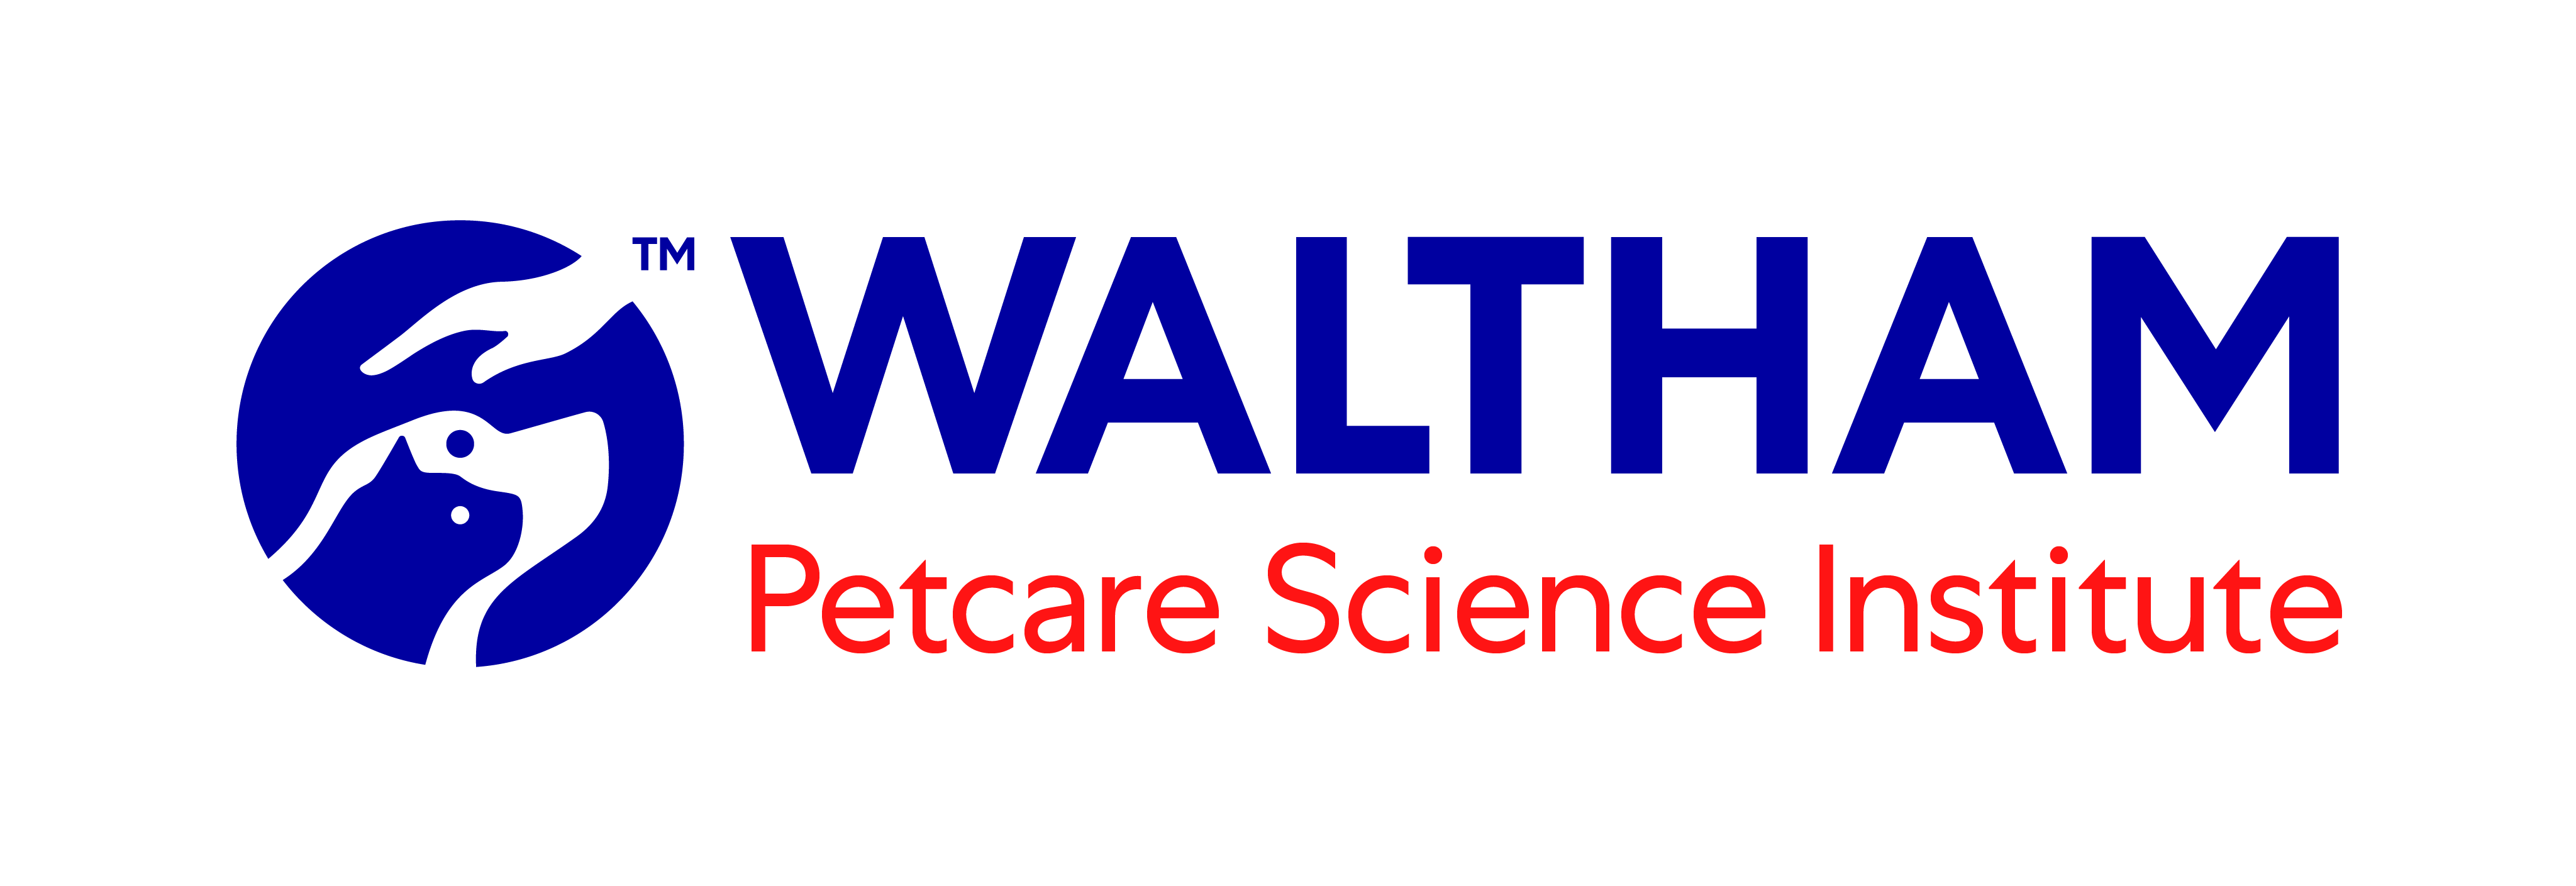 Waltham Petcare Science Institute logo